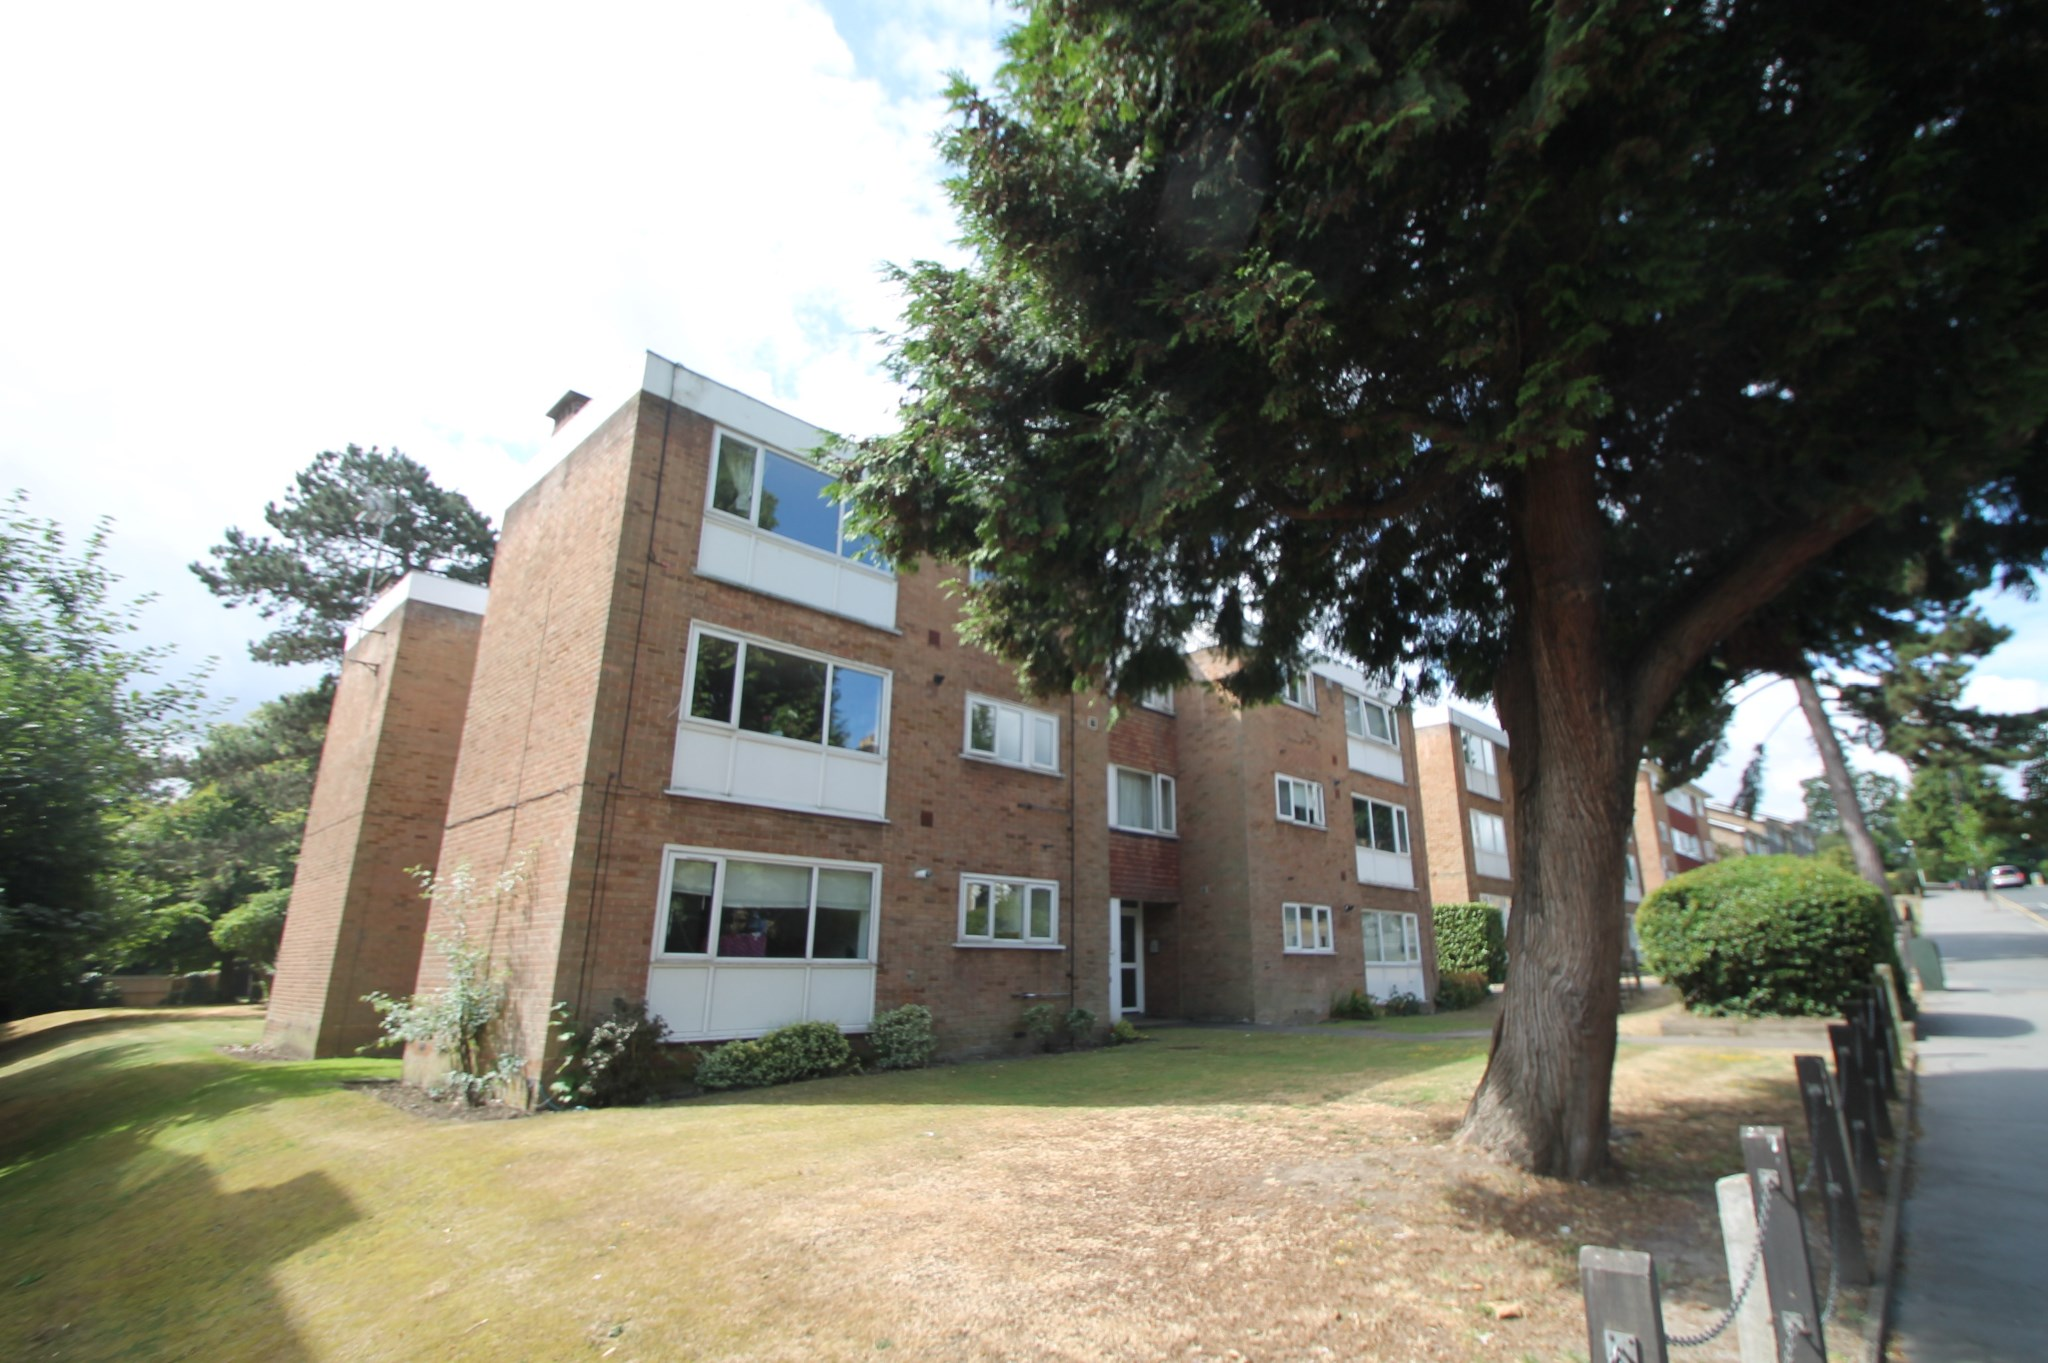 Fairhaven Court, Warham Road, South Croydon, CR2